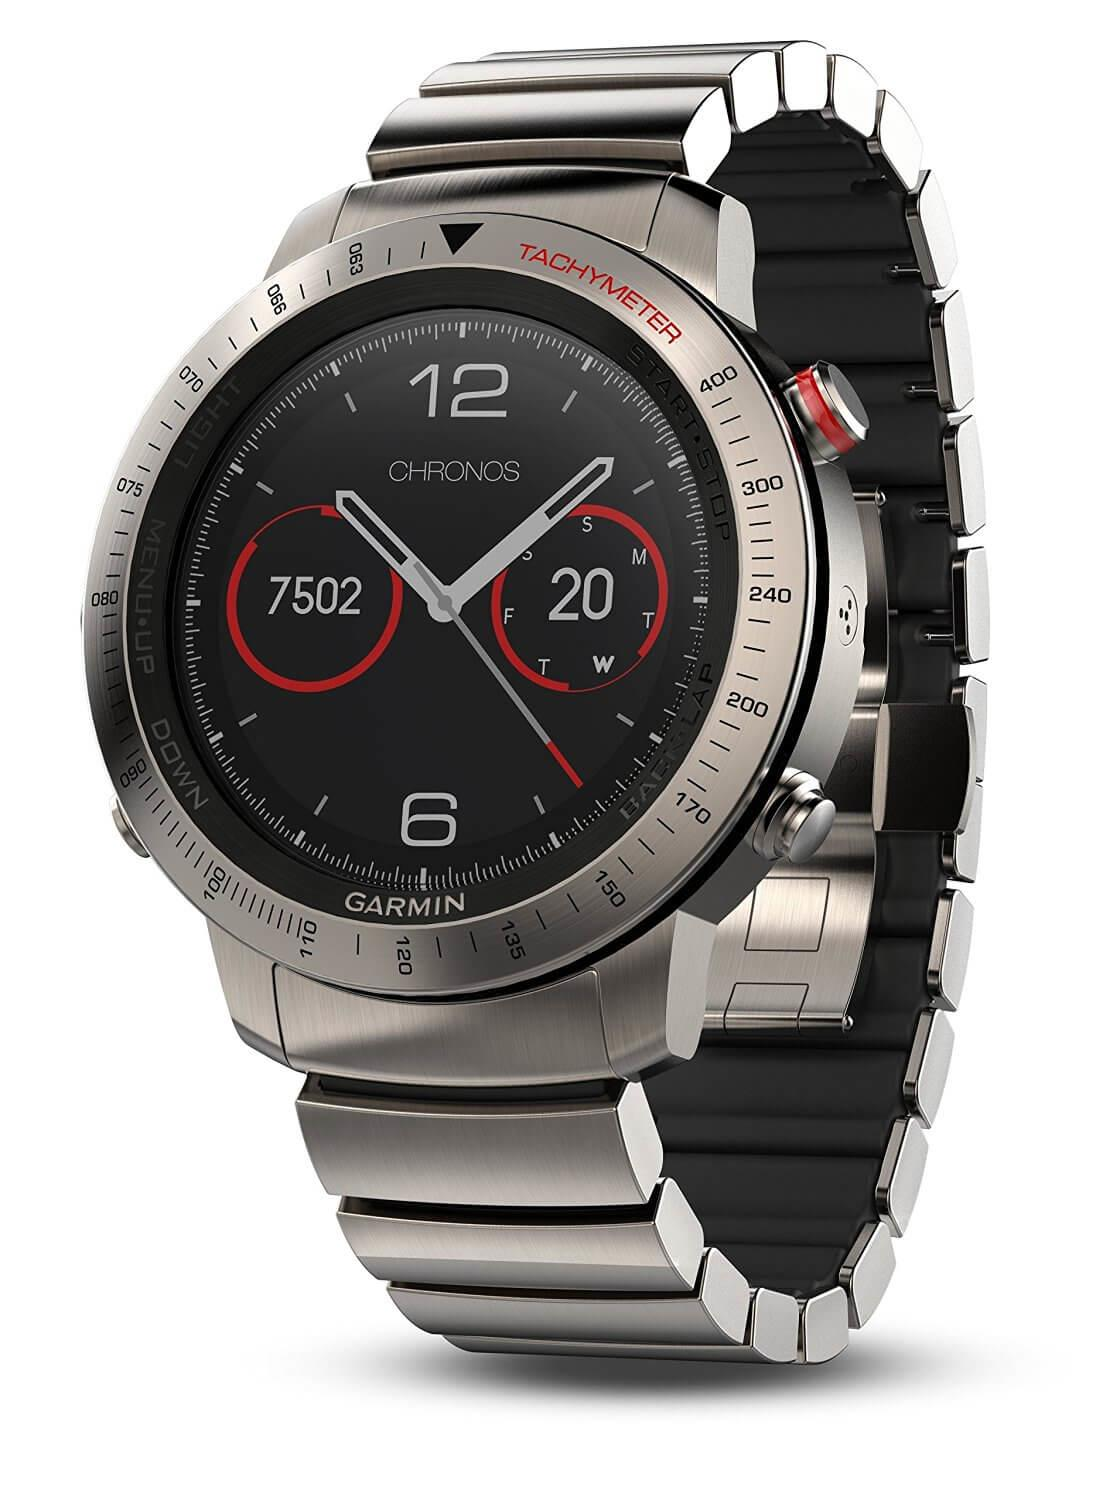 Garmin Fenix Chronos Review - To Buy or Not in Sep 2019?